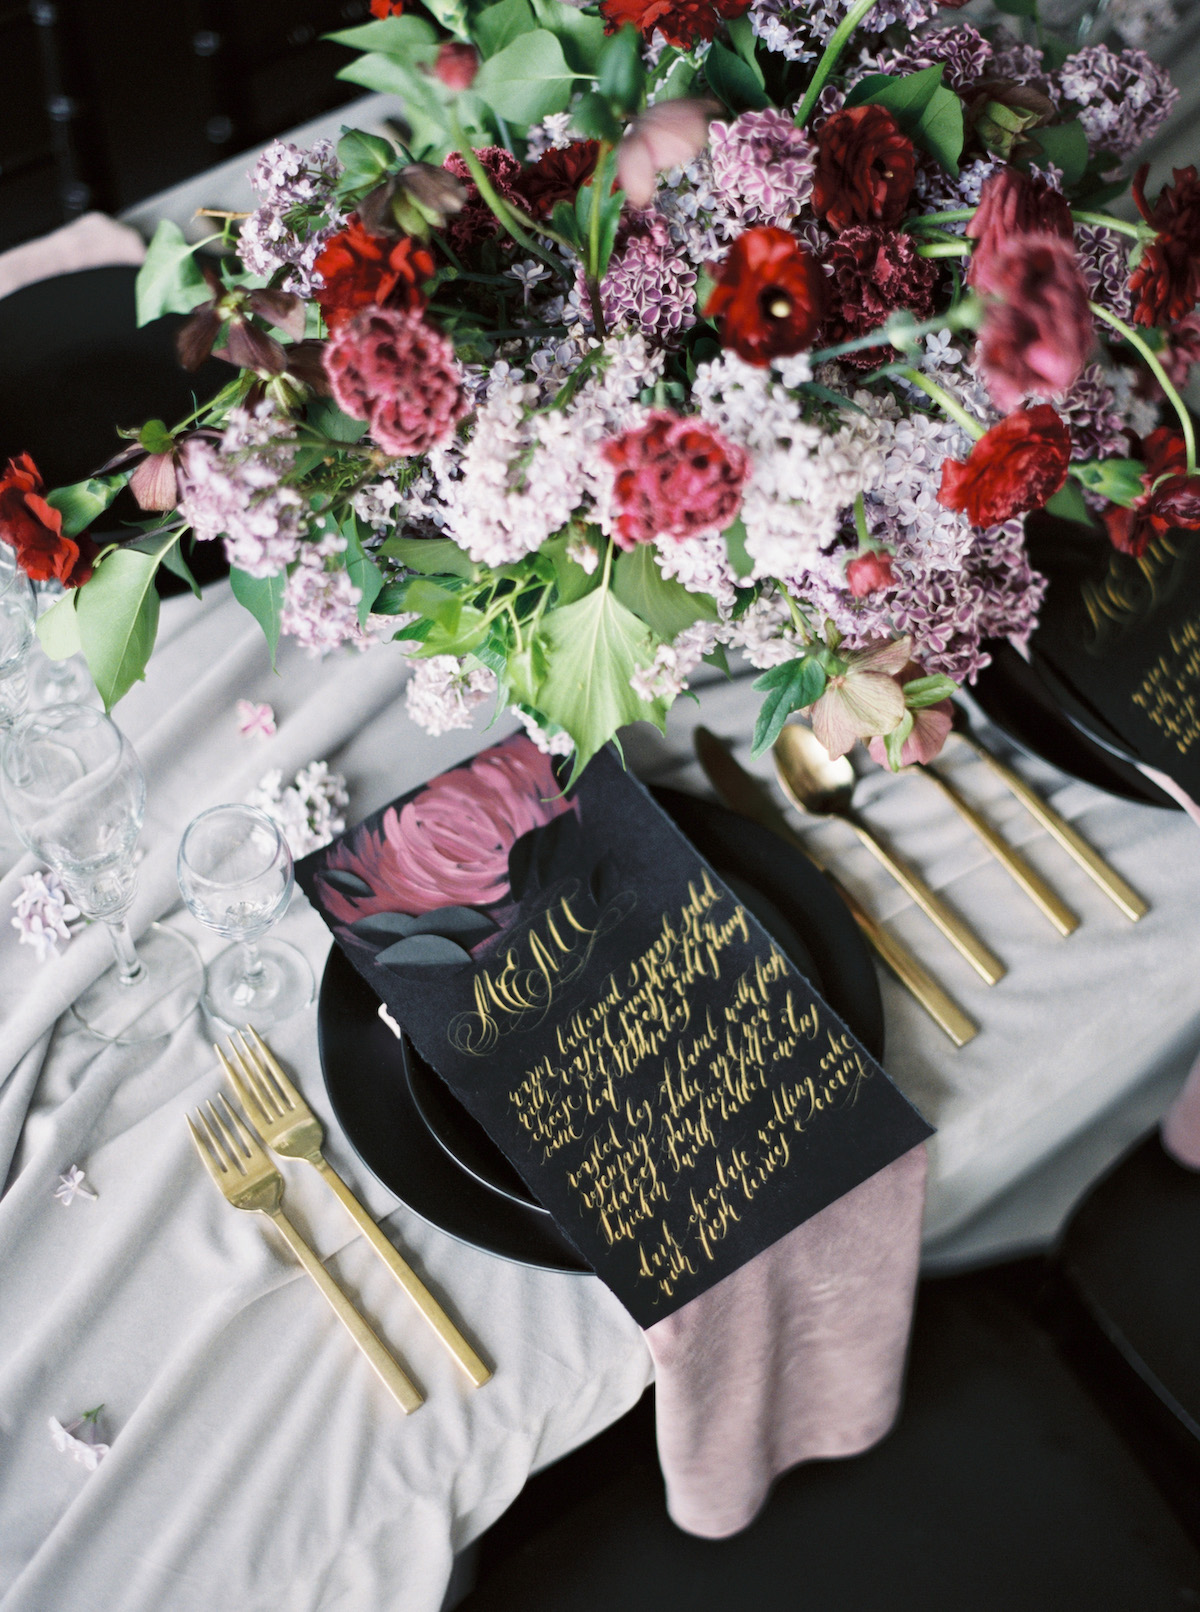 Moody wedding ideas for a table setting, with luxury fine art flowers and hand painted wedding stationery